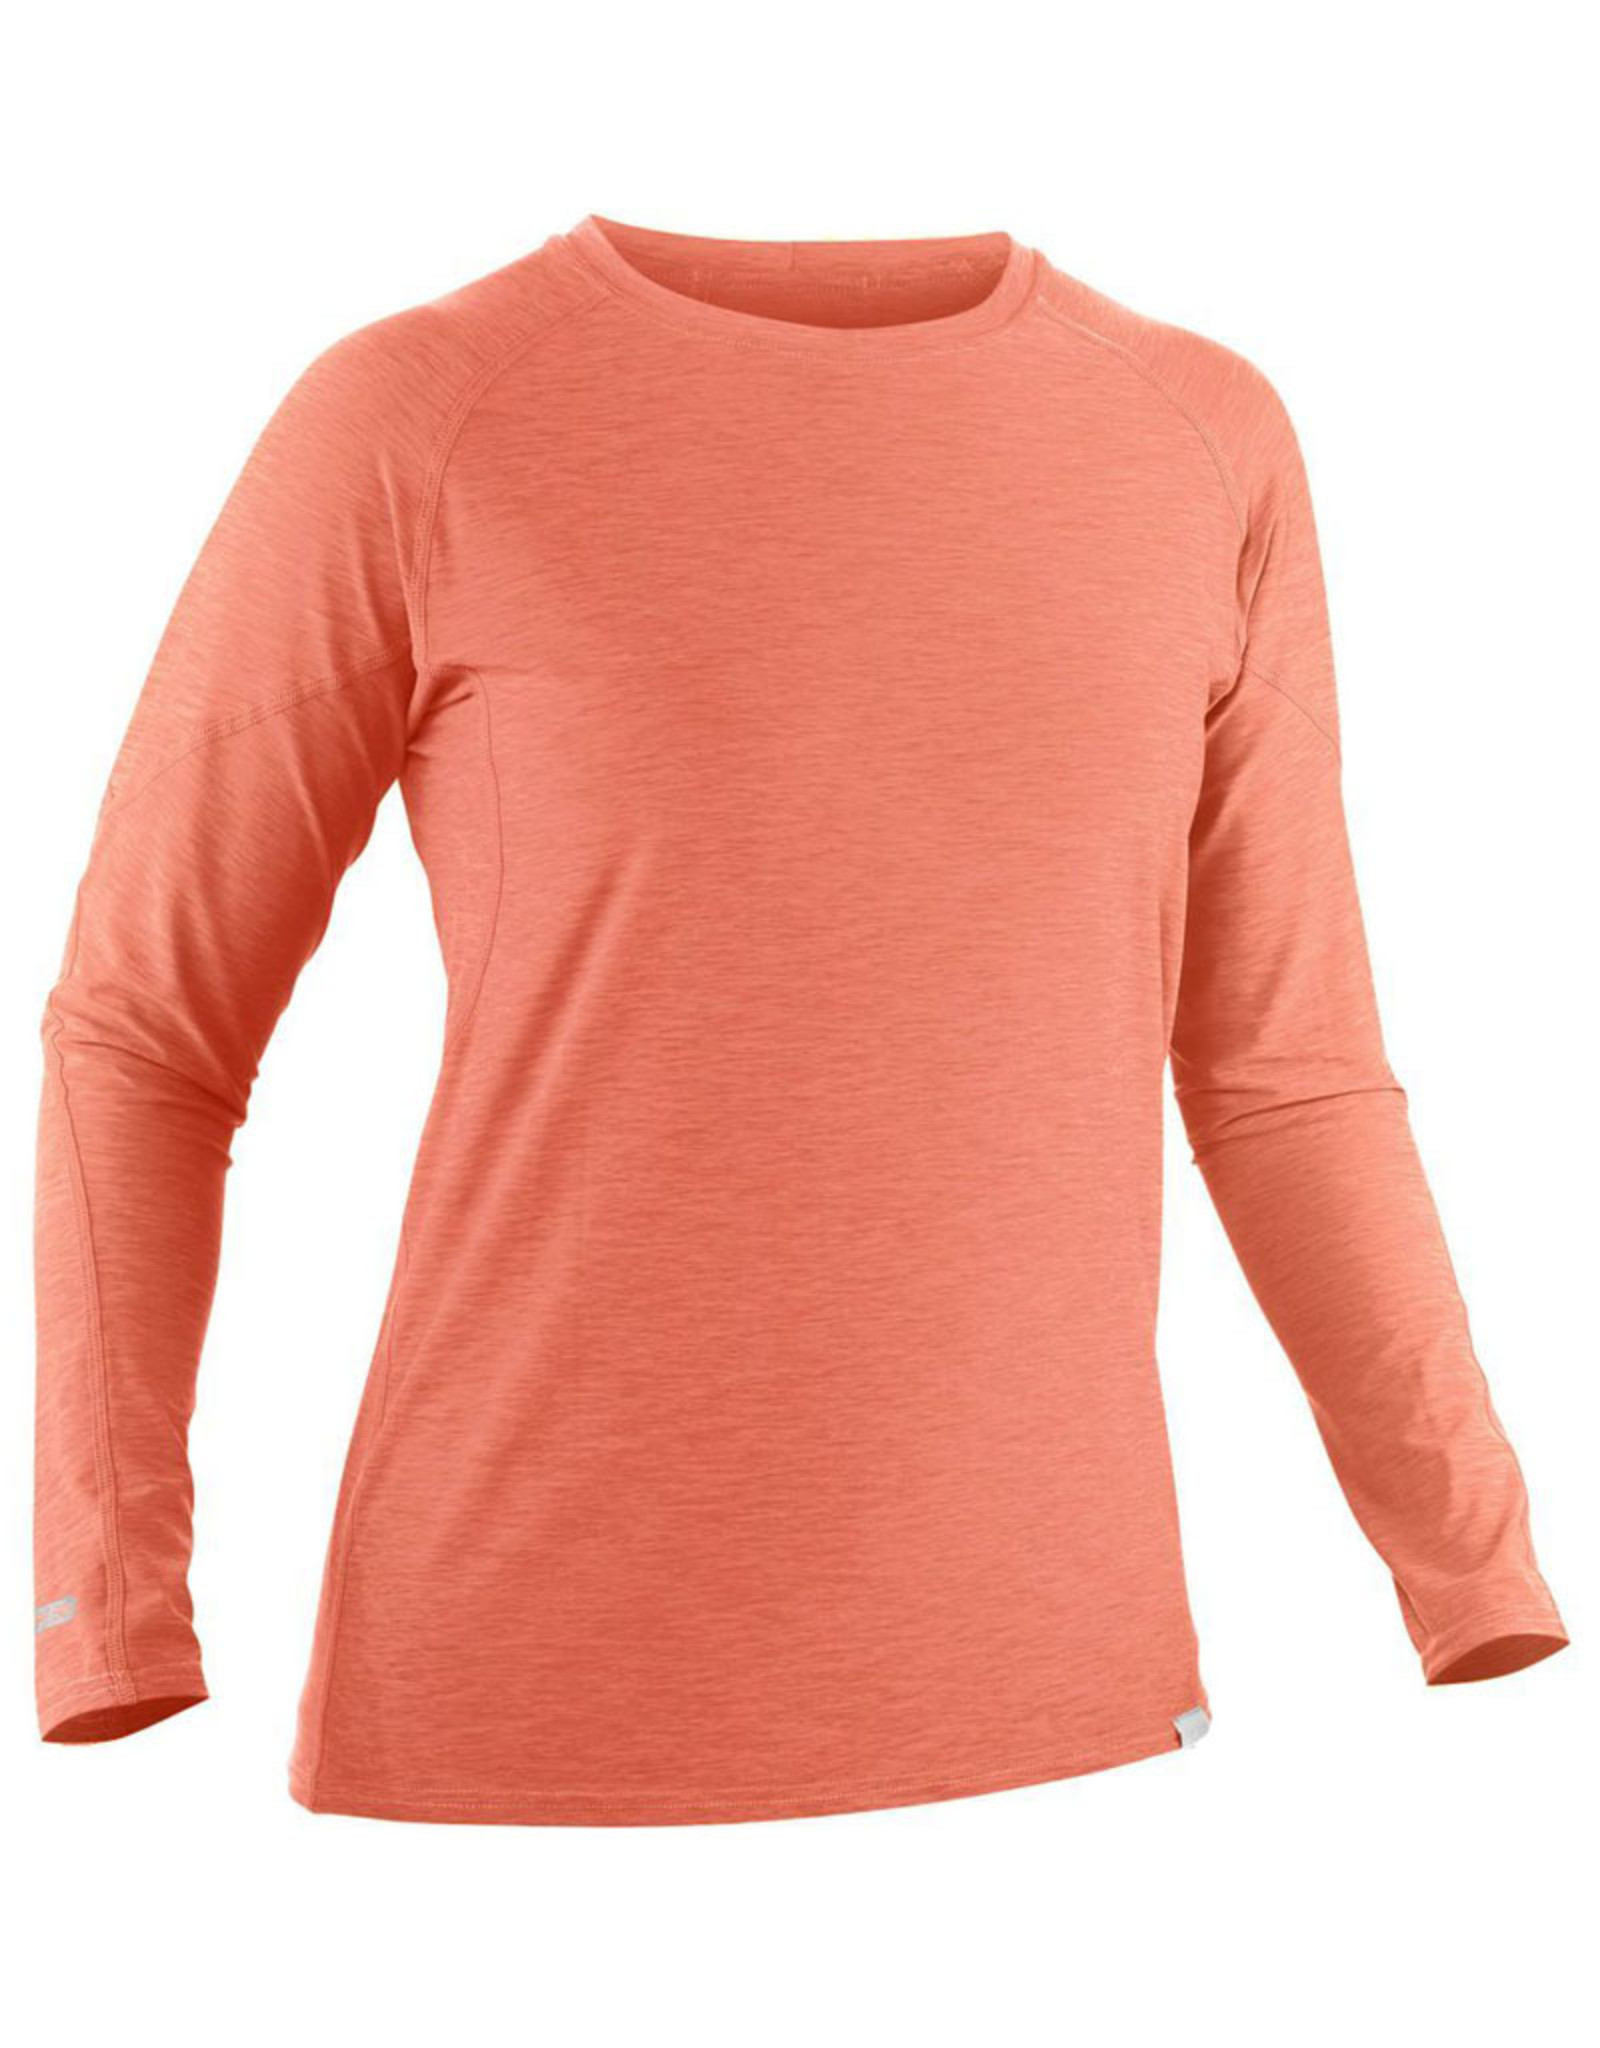 NRS NRS H2Core Silkweight L/S - Women's